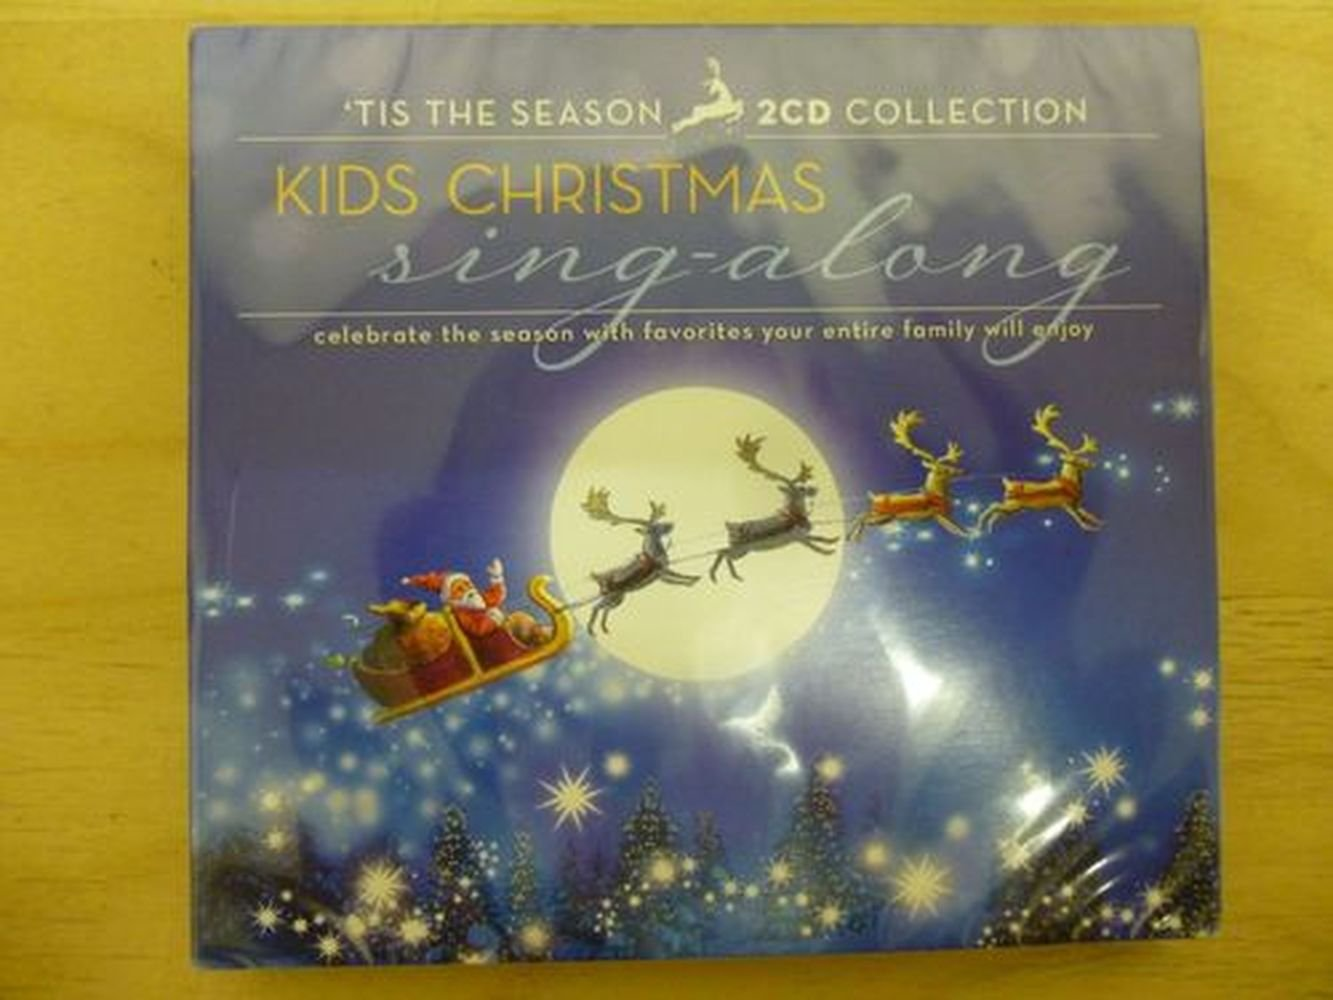 Kids Christmas Sing-Along - 2008 Holiday Cd - Includes 24 Songs on 2 ...